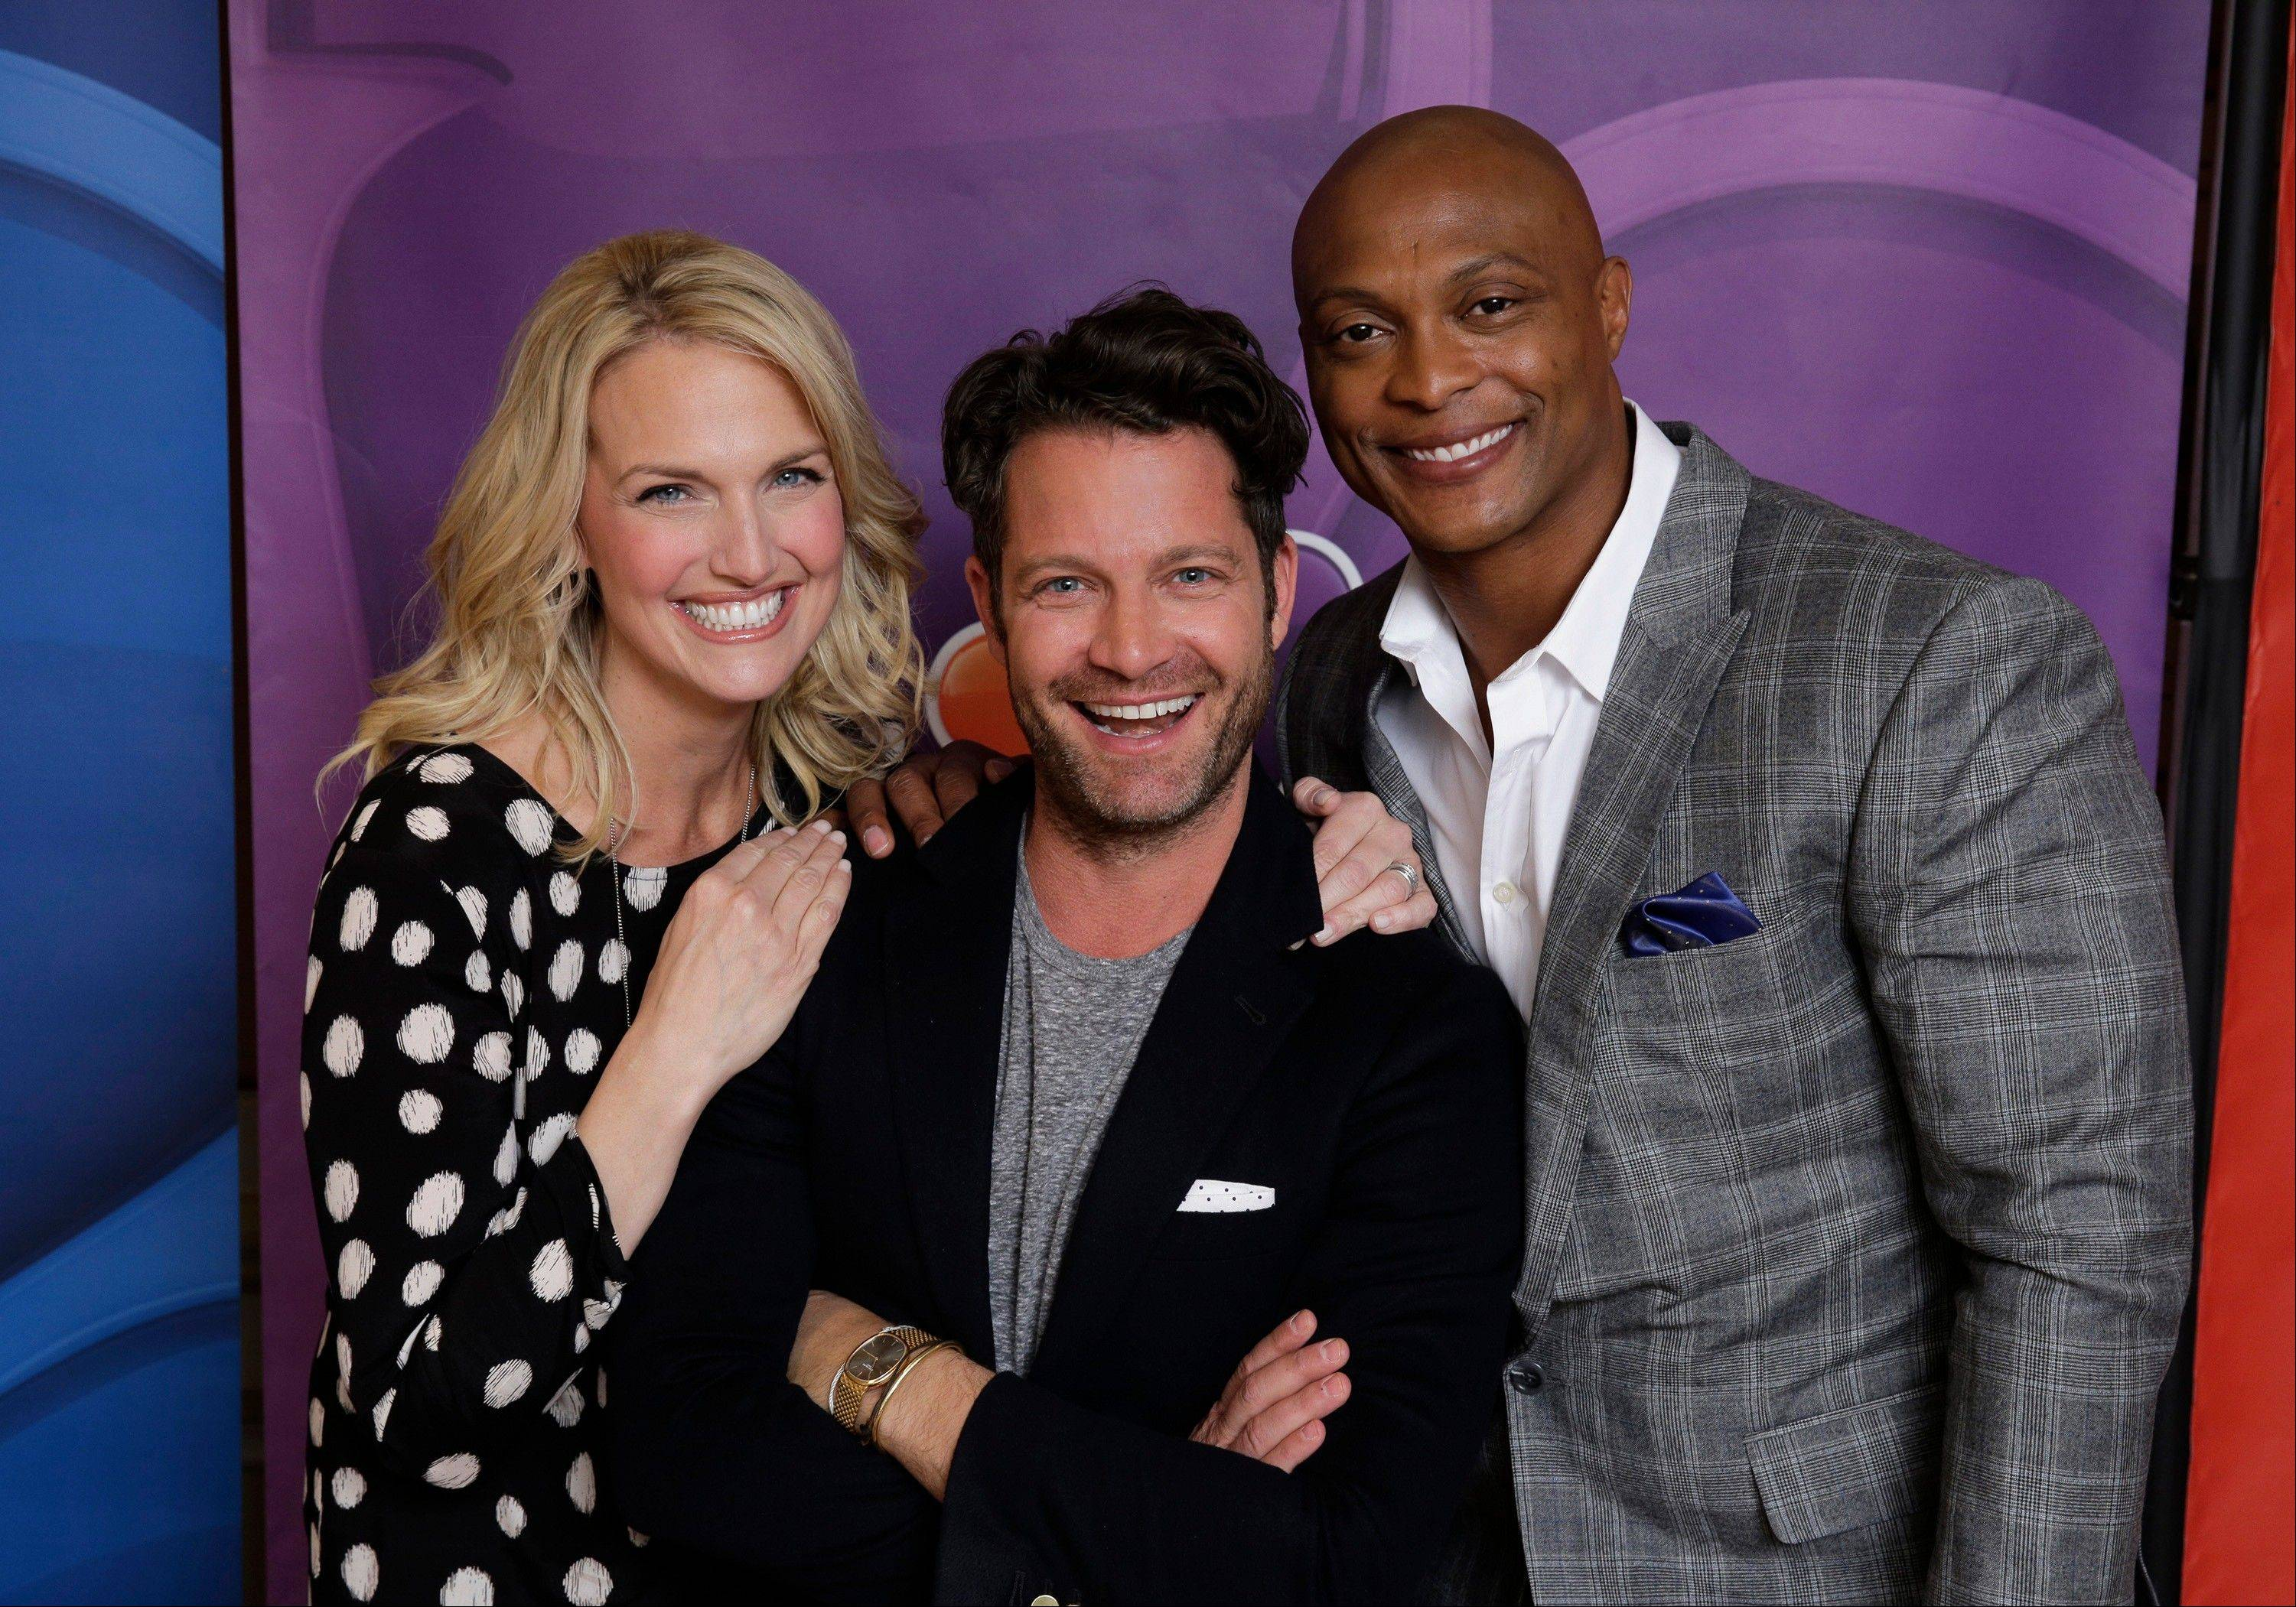 This Jan. 19, 2014 photo shows, from left, Monica Pederson,, Nate Berkus, and Eddie George from �American Dream Builders� at the NBCUniversal Press Tour, in Pasadena, Calif. George, a former NFL player, is turning a critical eye to home building and design as a judge on a new reality television show. He joins designer Berkus and interior decorator Pedersen on �American Dream Builders� debuting March 23 on NBC.